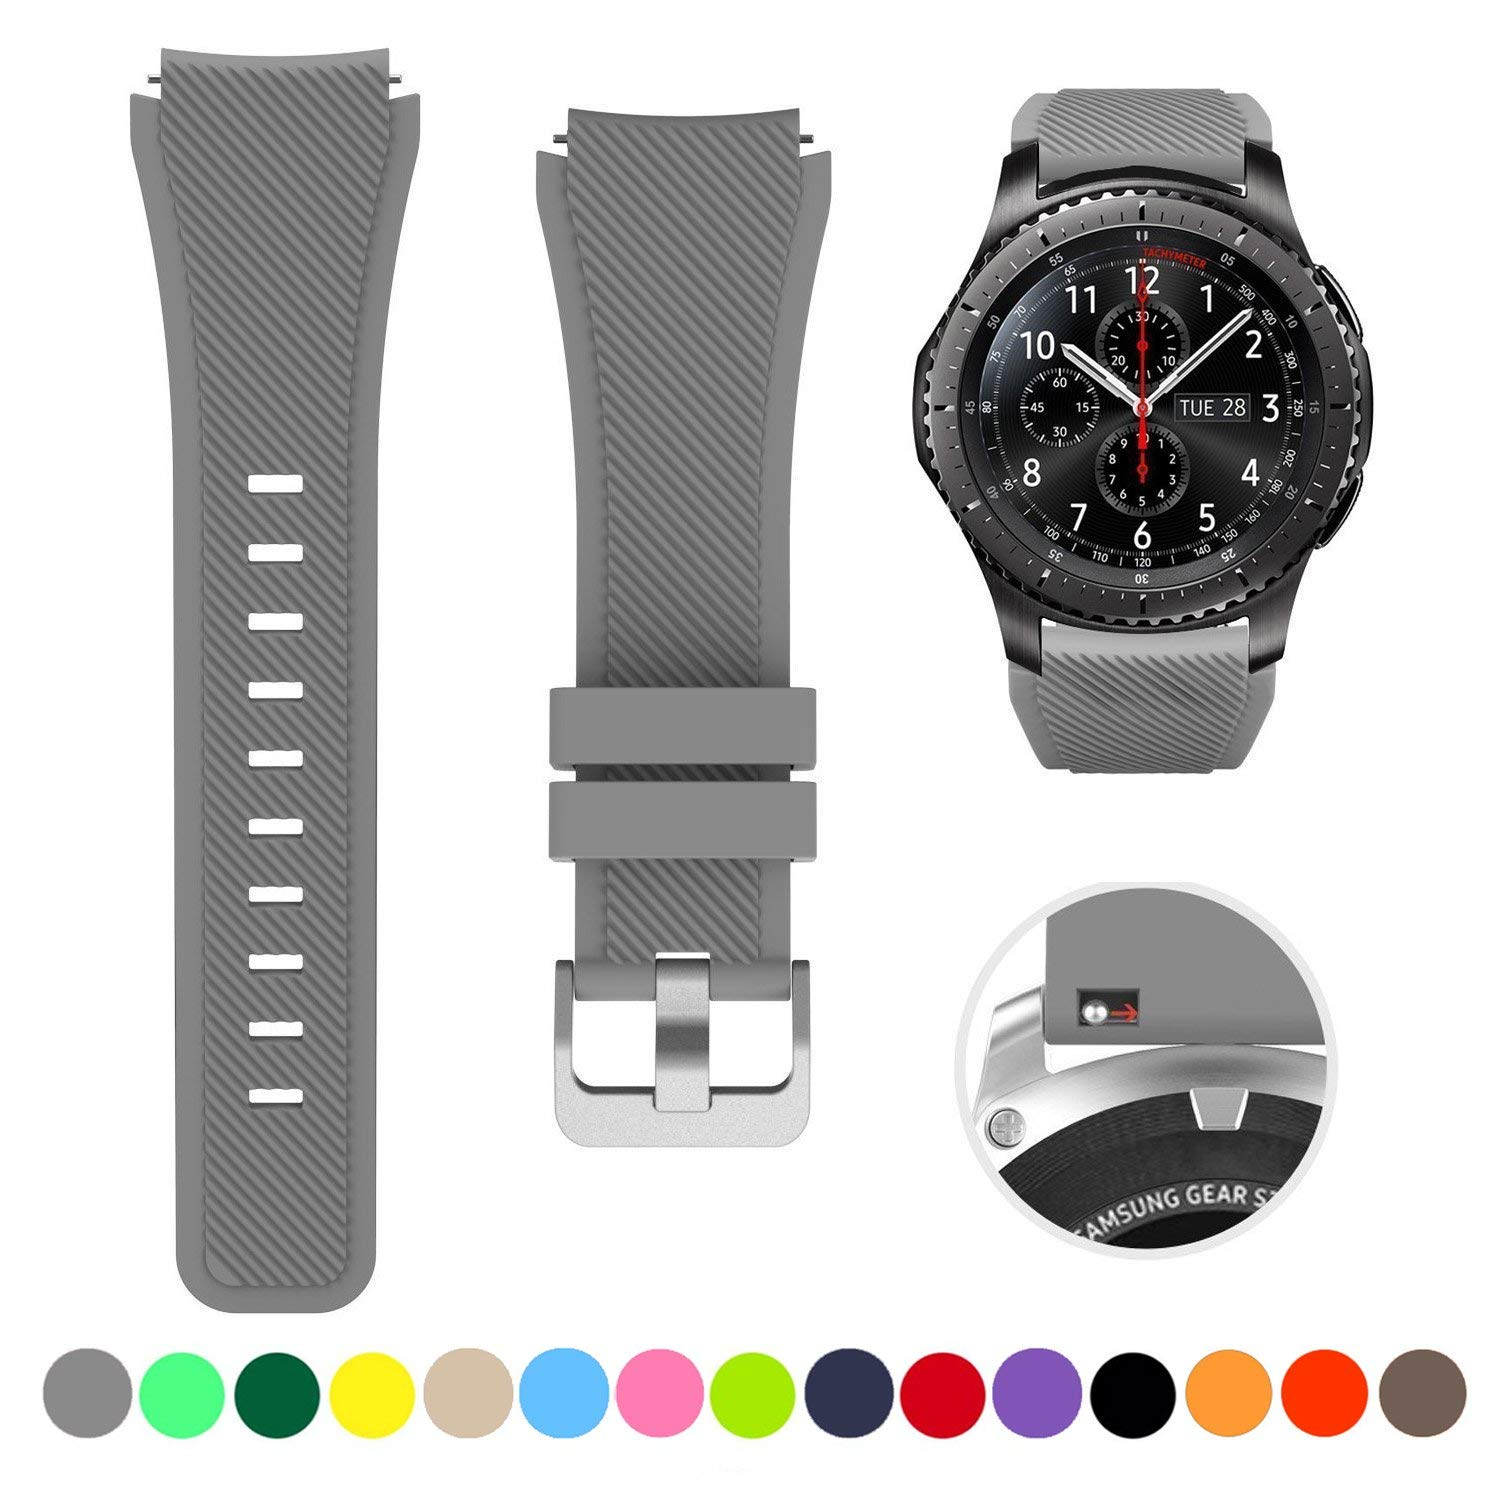 Minggo Bands for Samsung Gear S3 Frontier/Classic Watch Silicone Bracelet, Sports Silicone Band Strap Replacement Wristband for Samsung Gear S3 Frontier / S3 Classic (Grey)